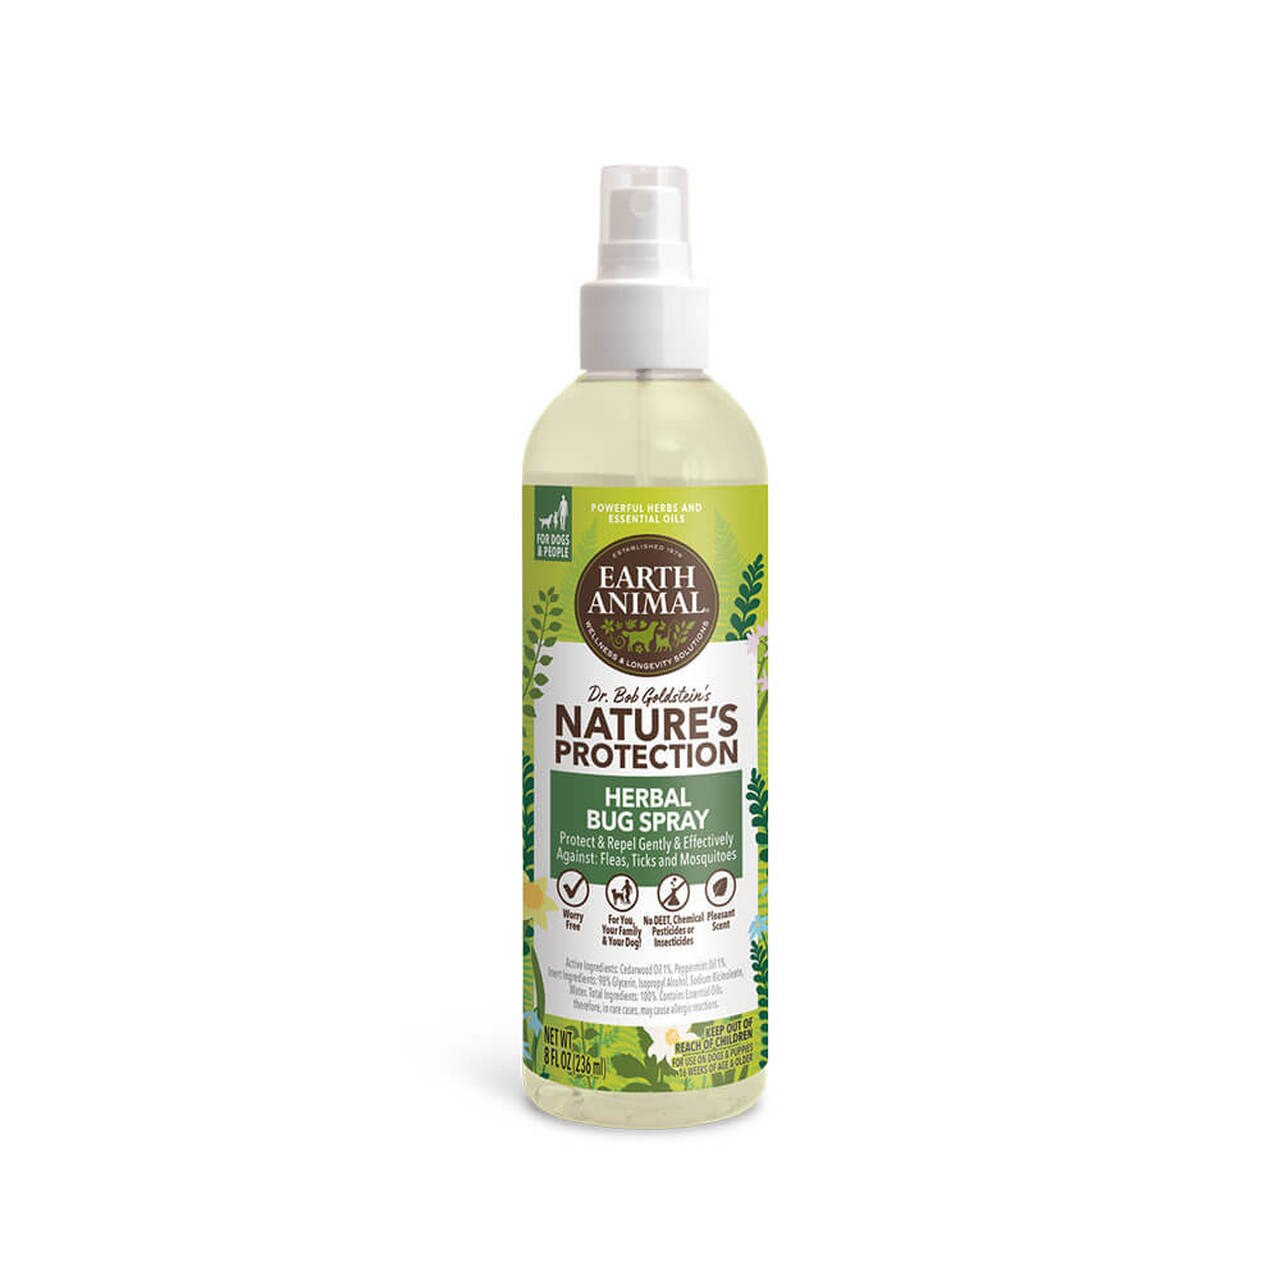 Earth Animal Nature's Protection Herbal Bug Spray for Dogs, 8-oz